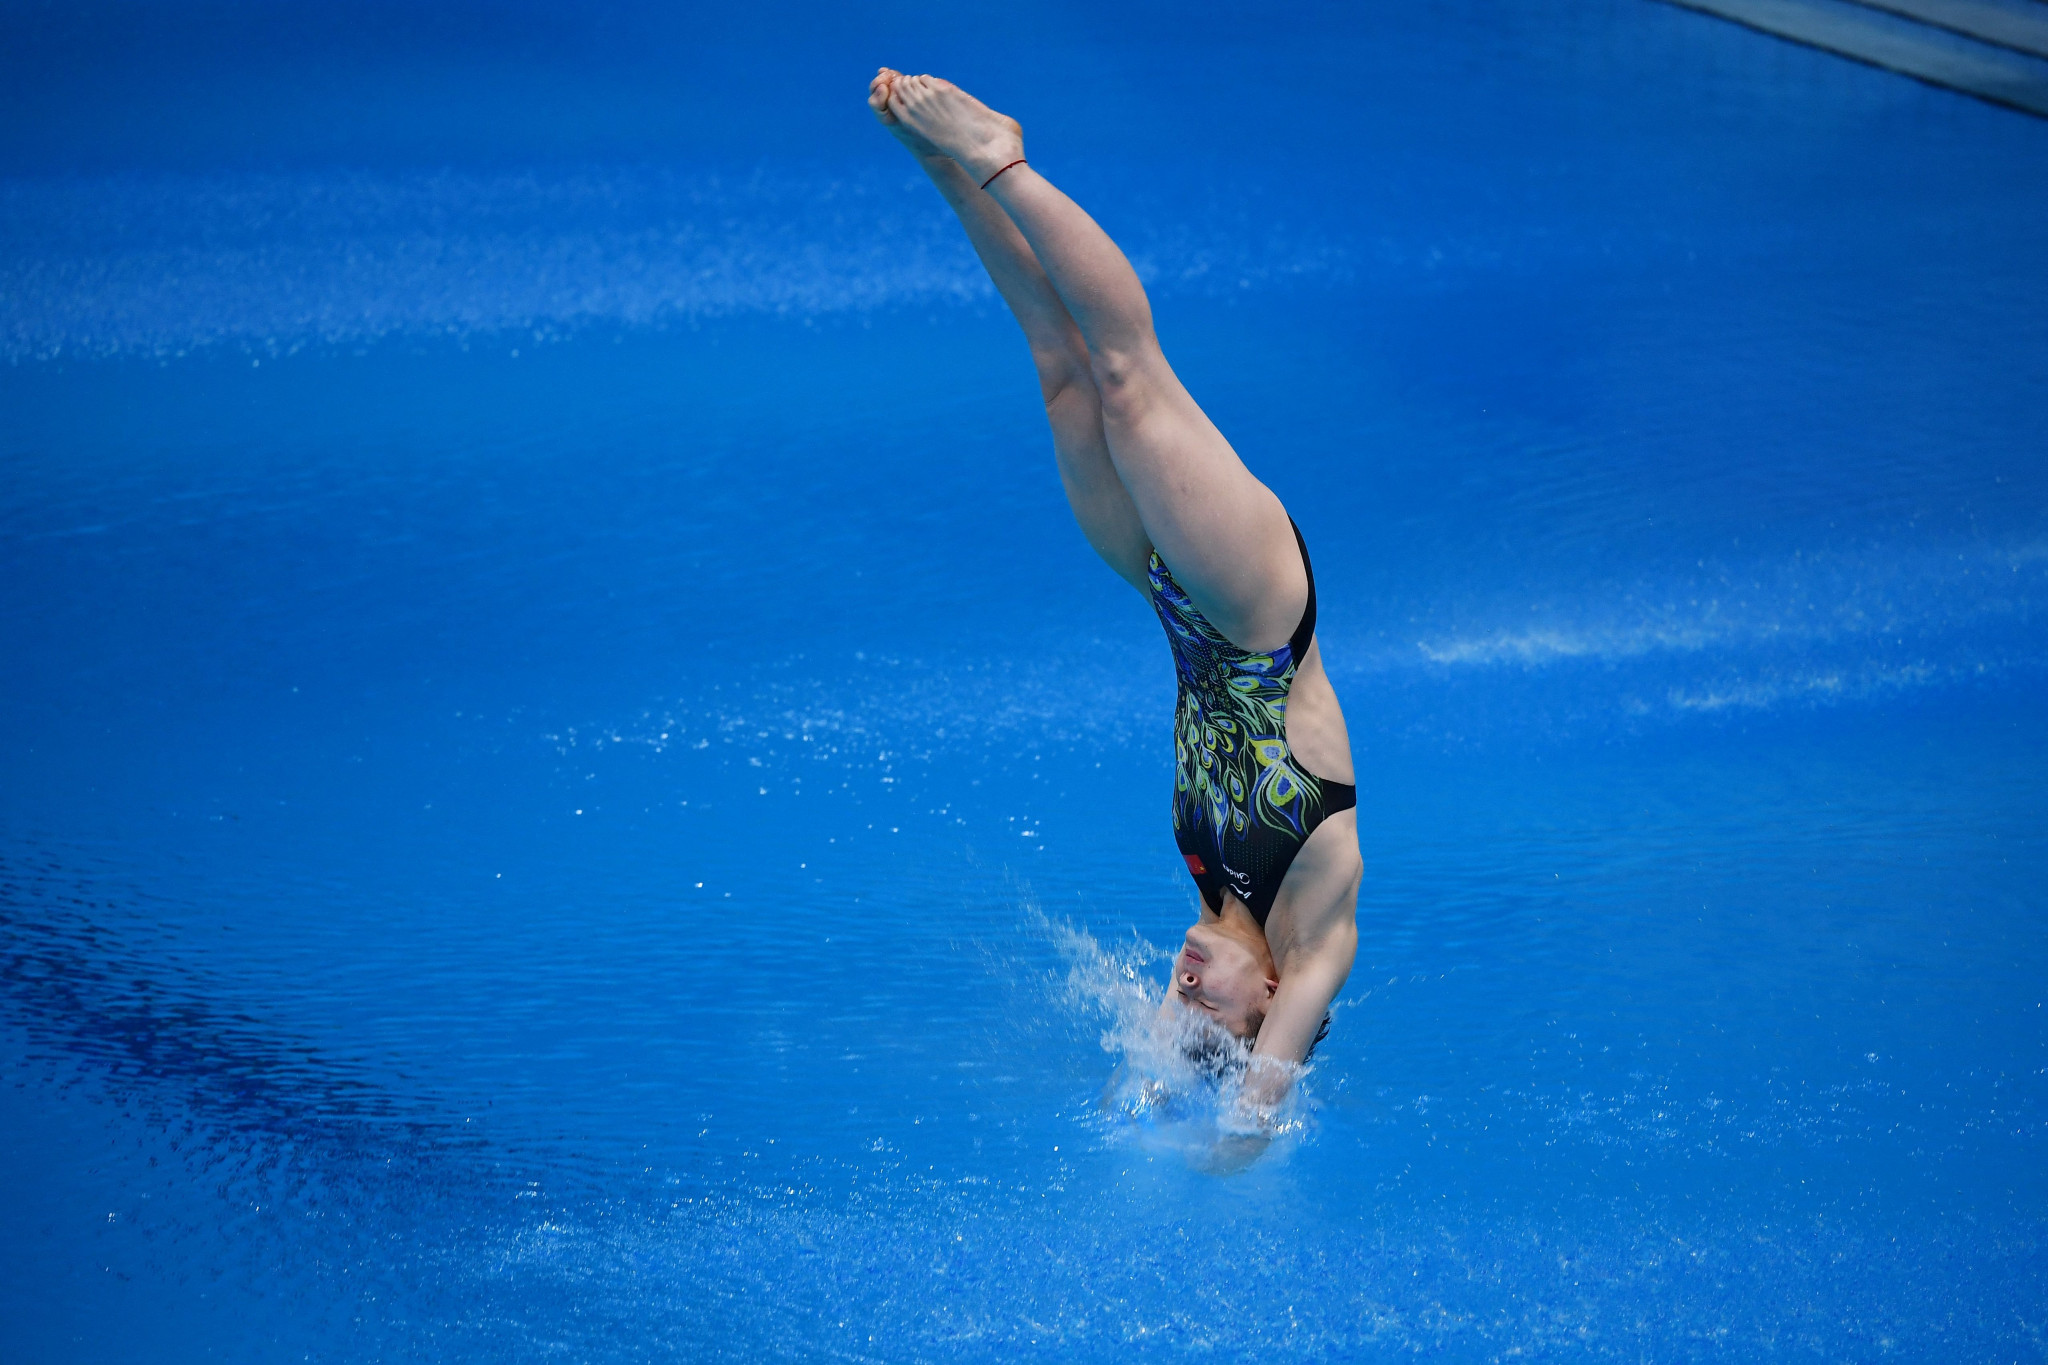 Chen and Ternovoi top semi-final standings at FINA Diving World Cup in Tokyo